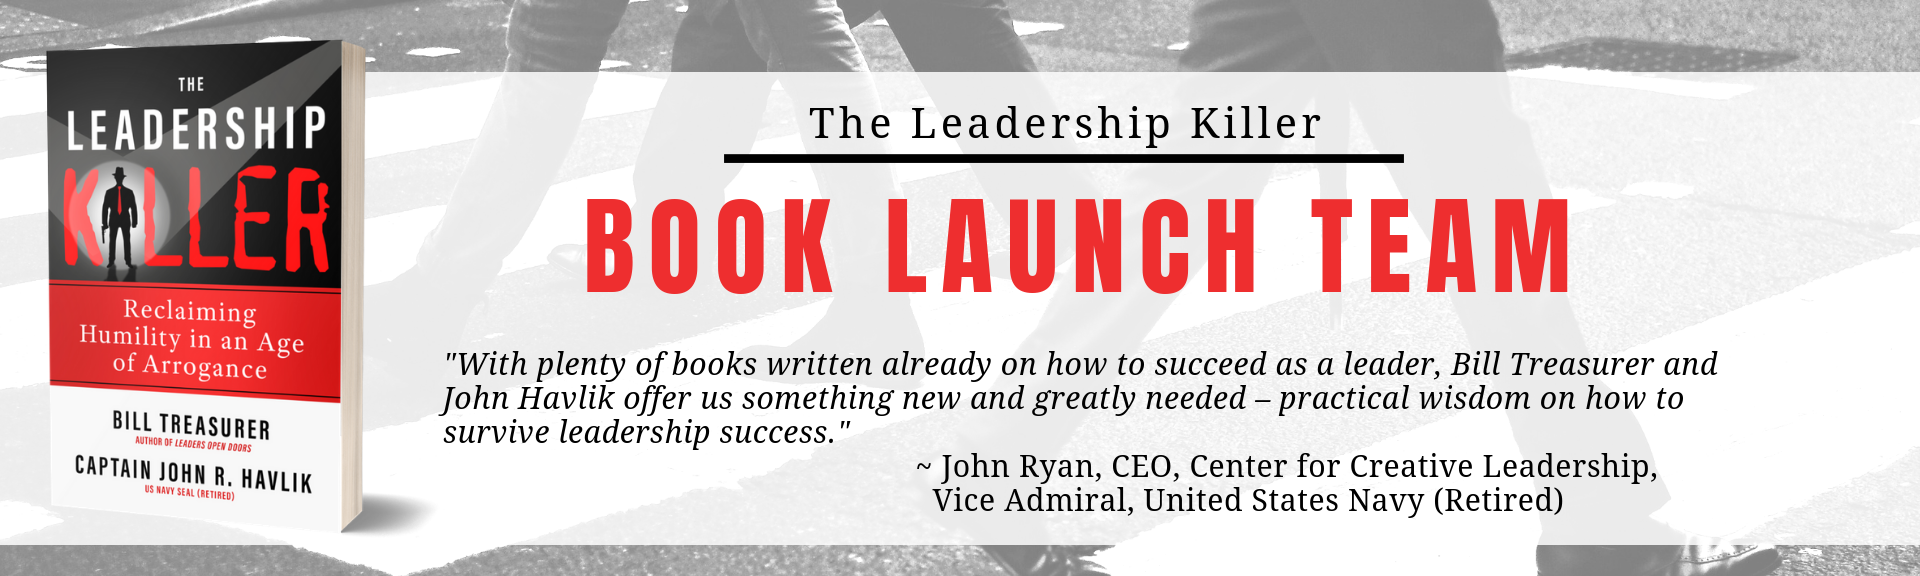 John Perkins - Leadership Killer Launch Team